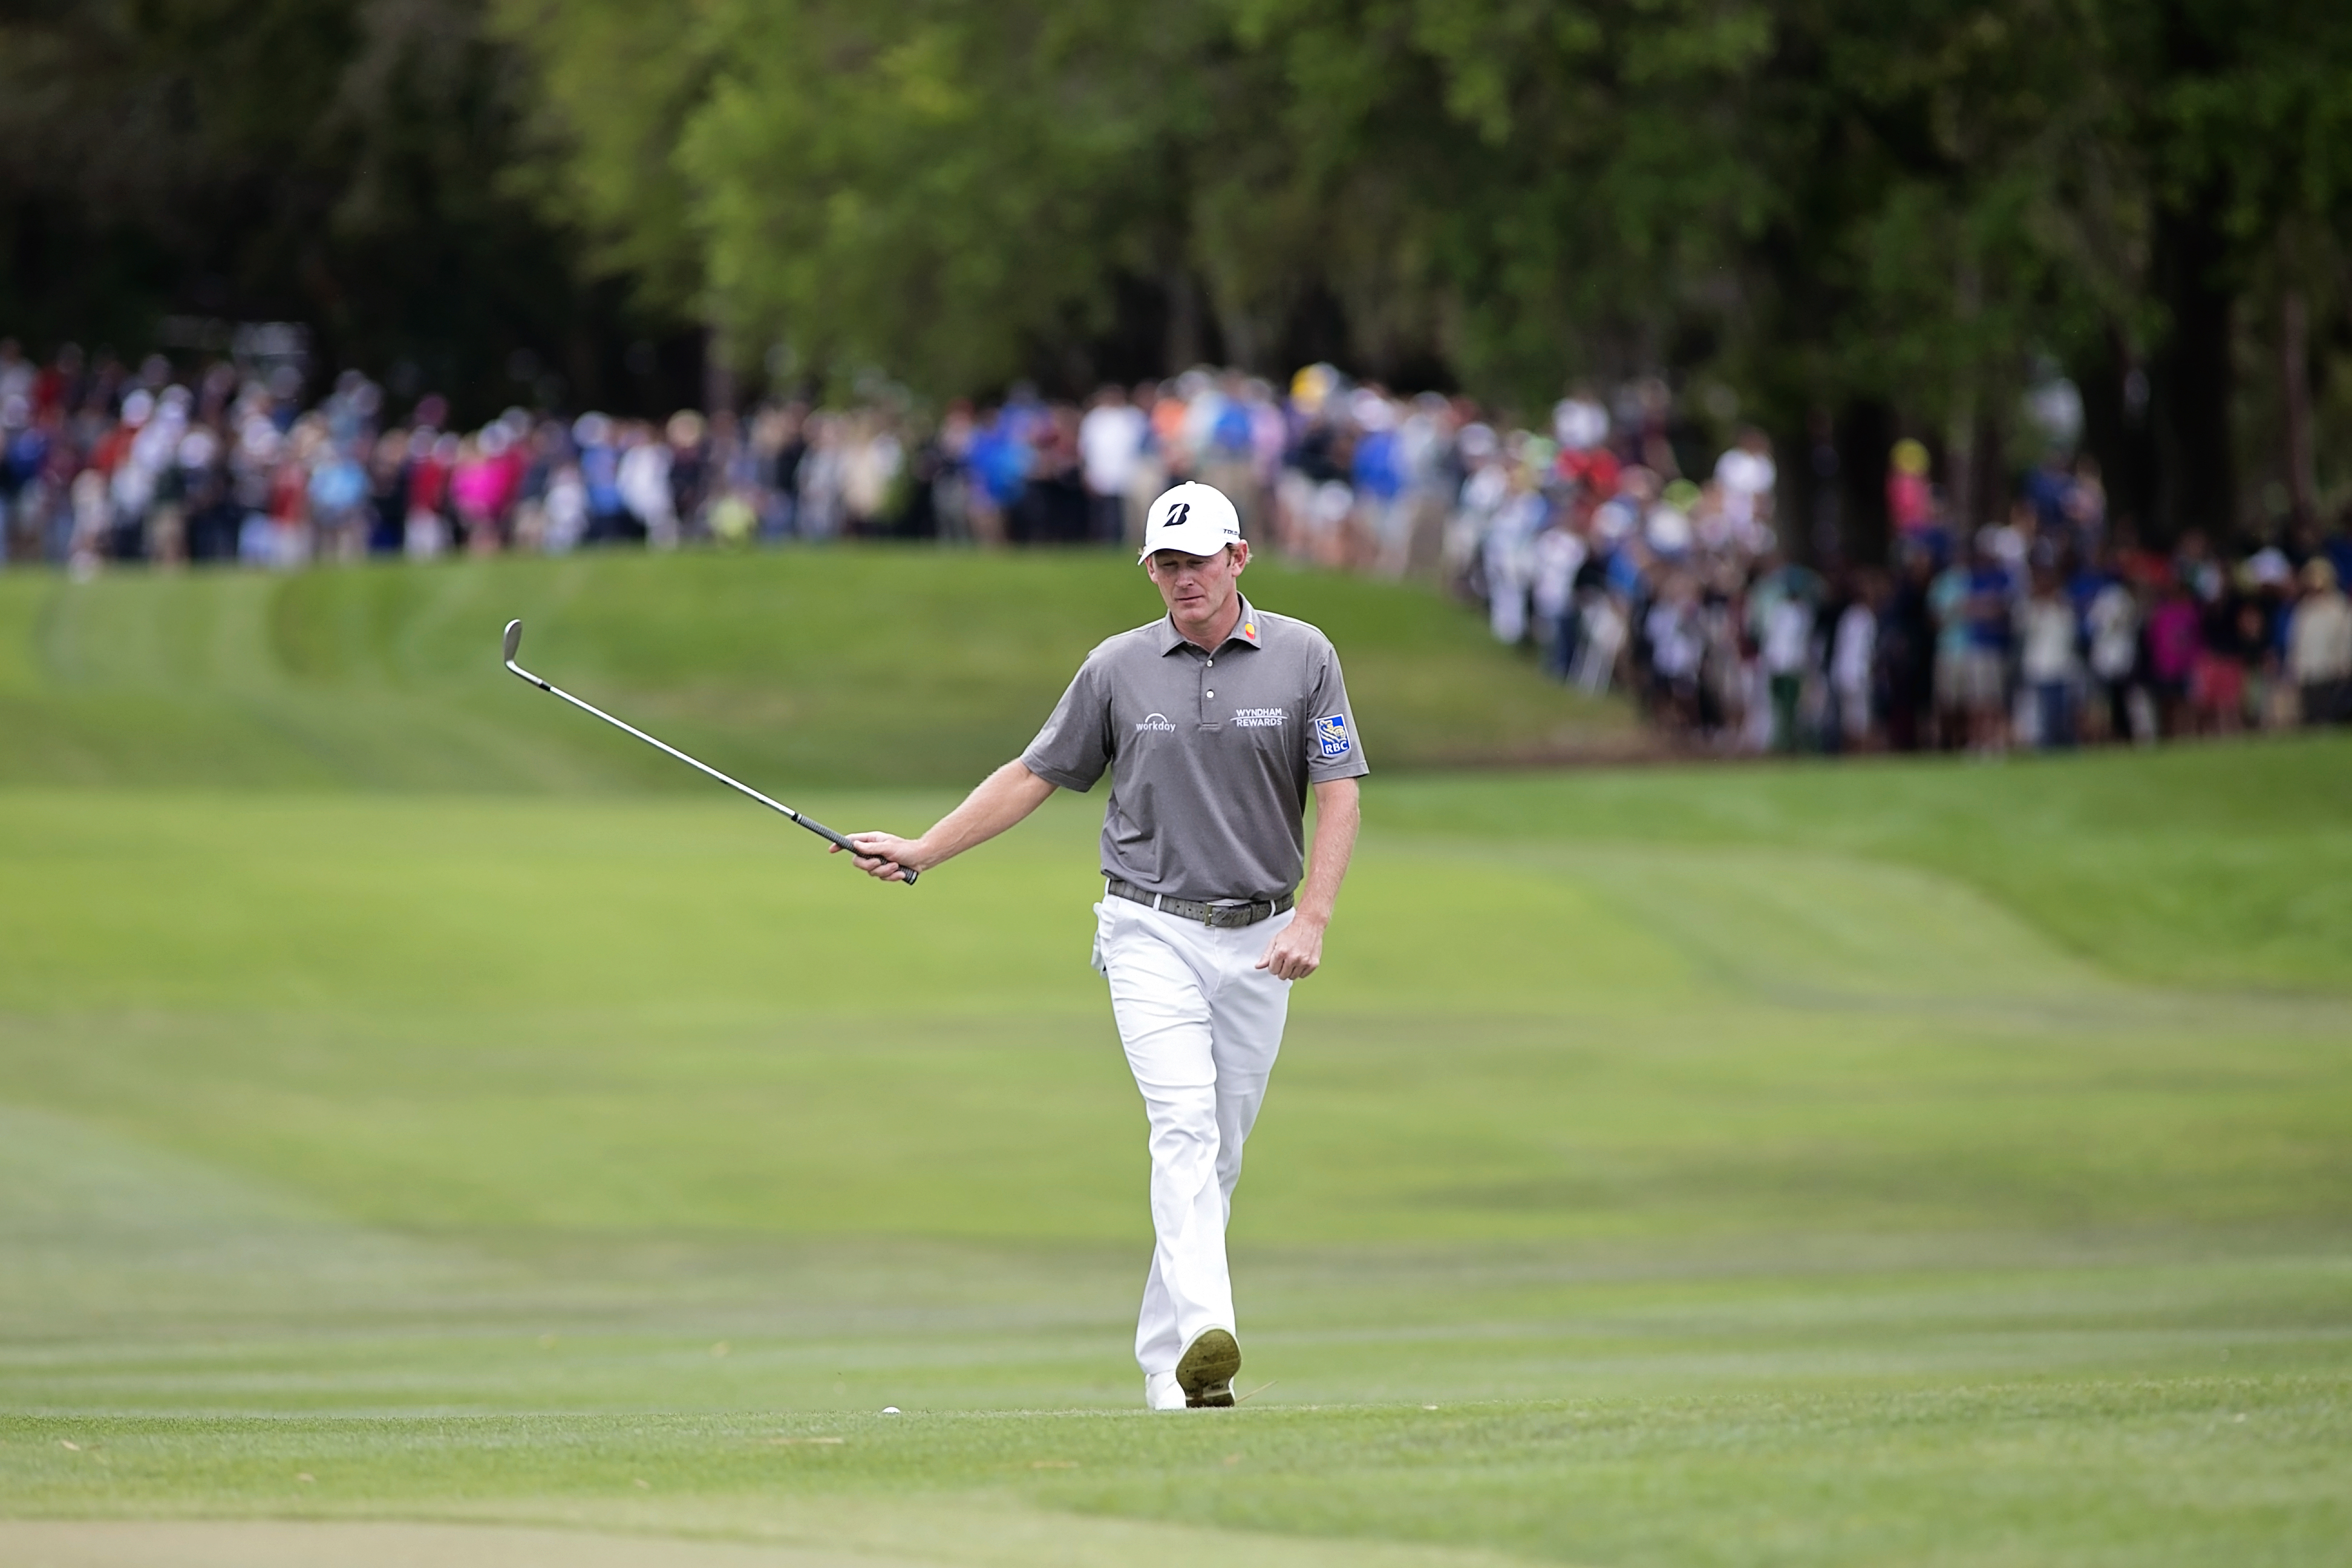 Snedeker keeps being paired with Tiger./CARMEN MANDATO